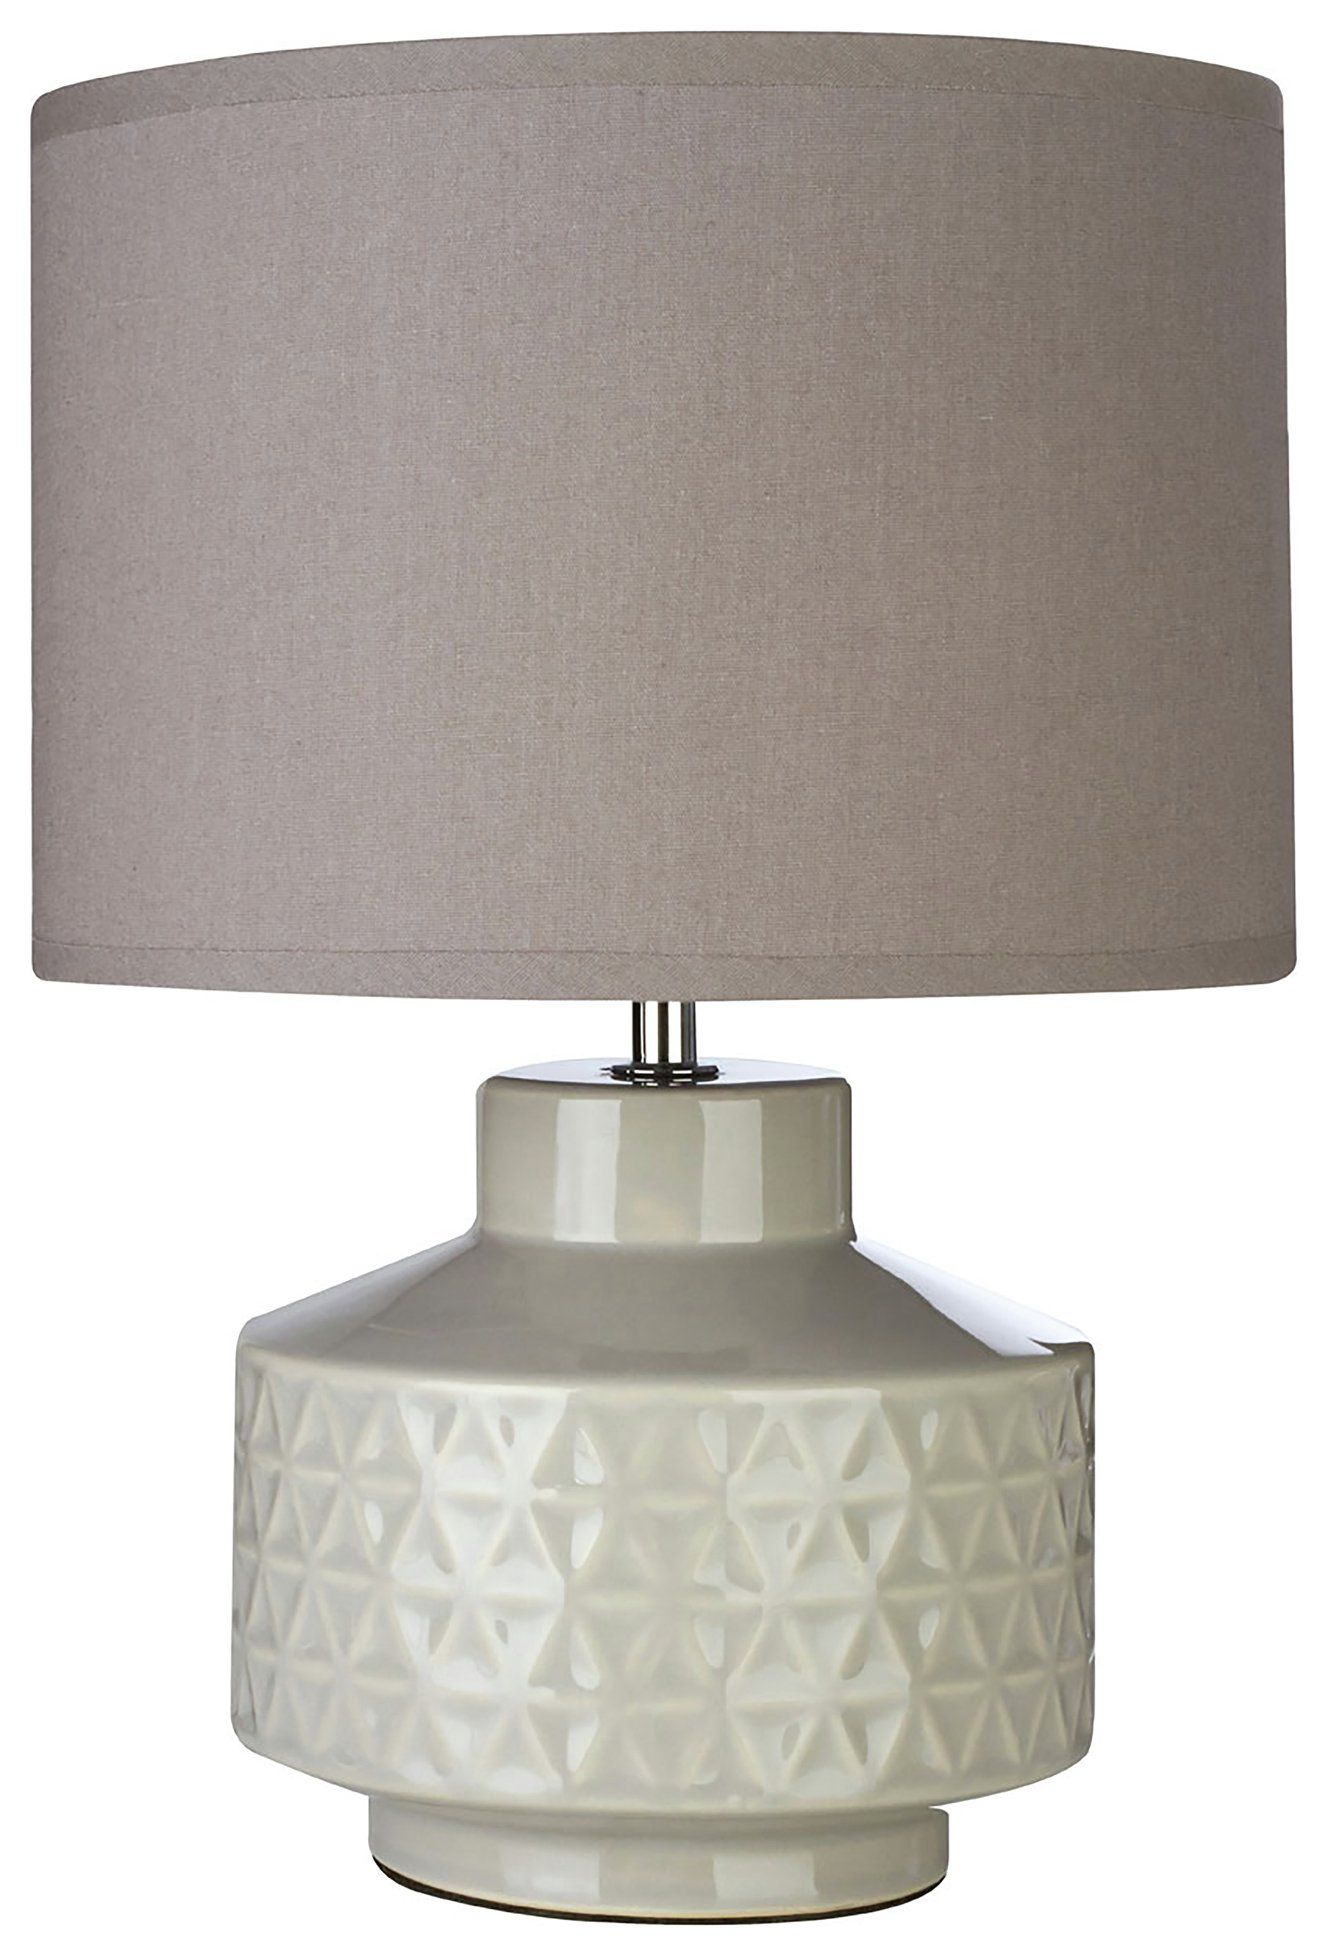 Image of Waverly - Ceramic - Table Lamp - Grey